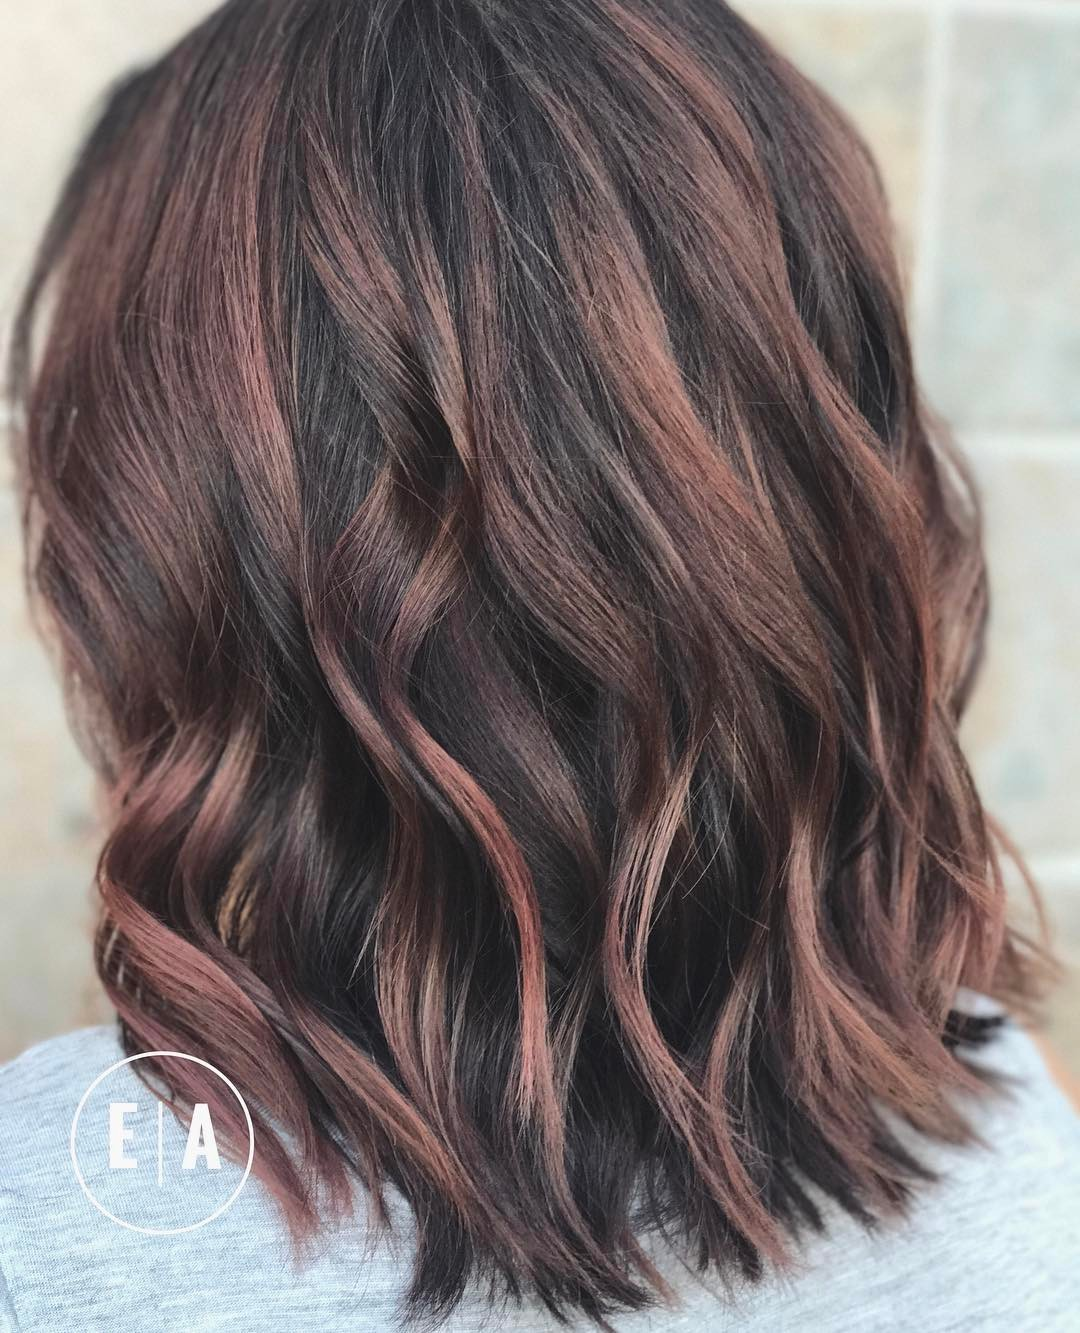 22 Trendy Hairstyles for Fall - Cool Stylish Fall Hair Color Ideas